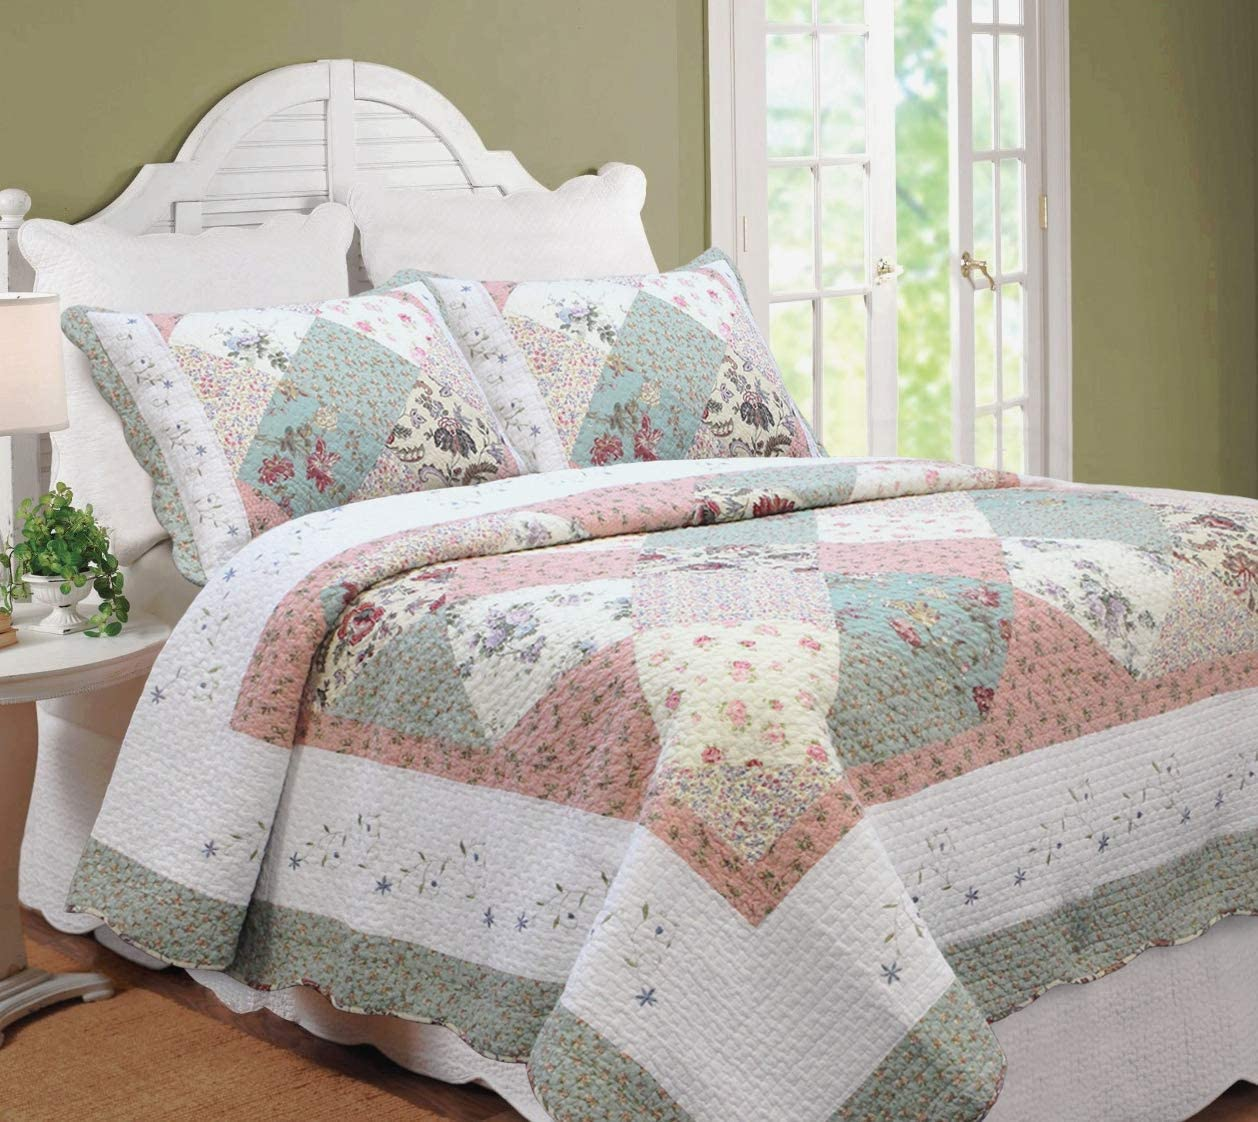 Cozy Line Home Fashions Floral Real Patchwork Tiffany Green Pink Lilac Scalloped Edge Country 100% Cotton Quilt Bedding Set, Reversible Coverlet Bedspread for Women (Celia, King - 3 Piece)